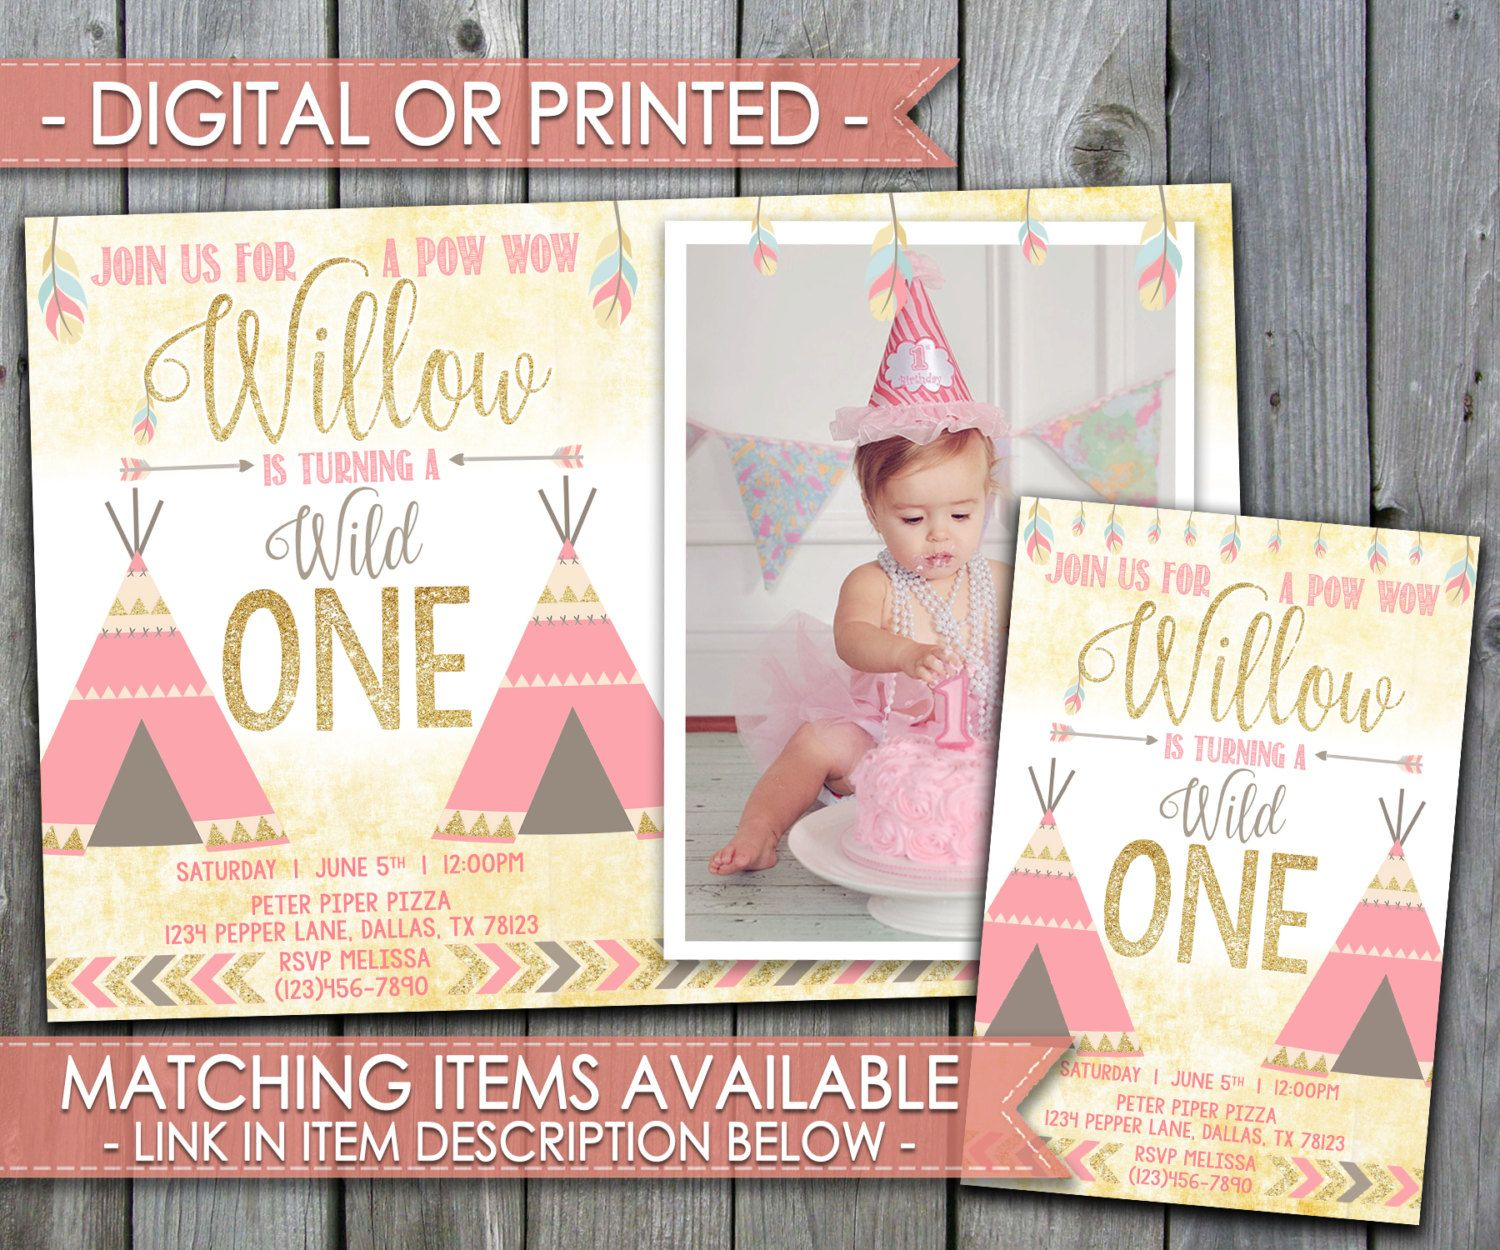 Teepee Invitation Pow Pow Invitation Tribal Invitation Teepee Birthday Invitation Gold Glitte Tribal Invitation First Birthday Posters Birthday Invitations